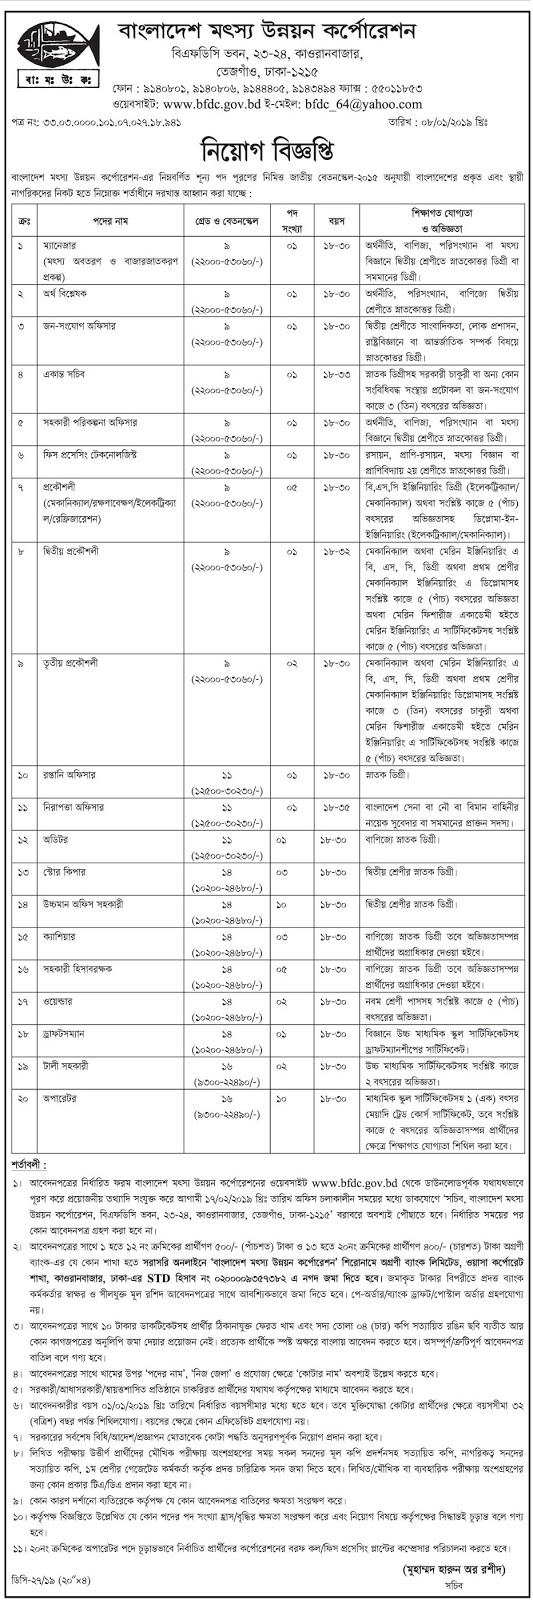 Bangladesh Fisheries Developmemt Corporation (BFDC) Job Circular 2019